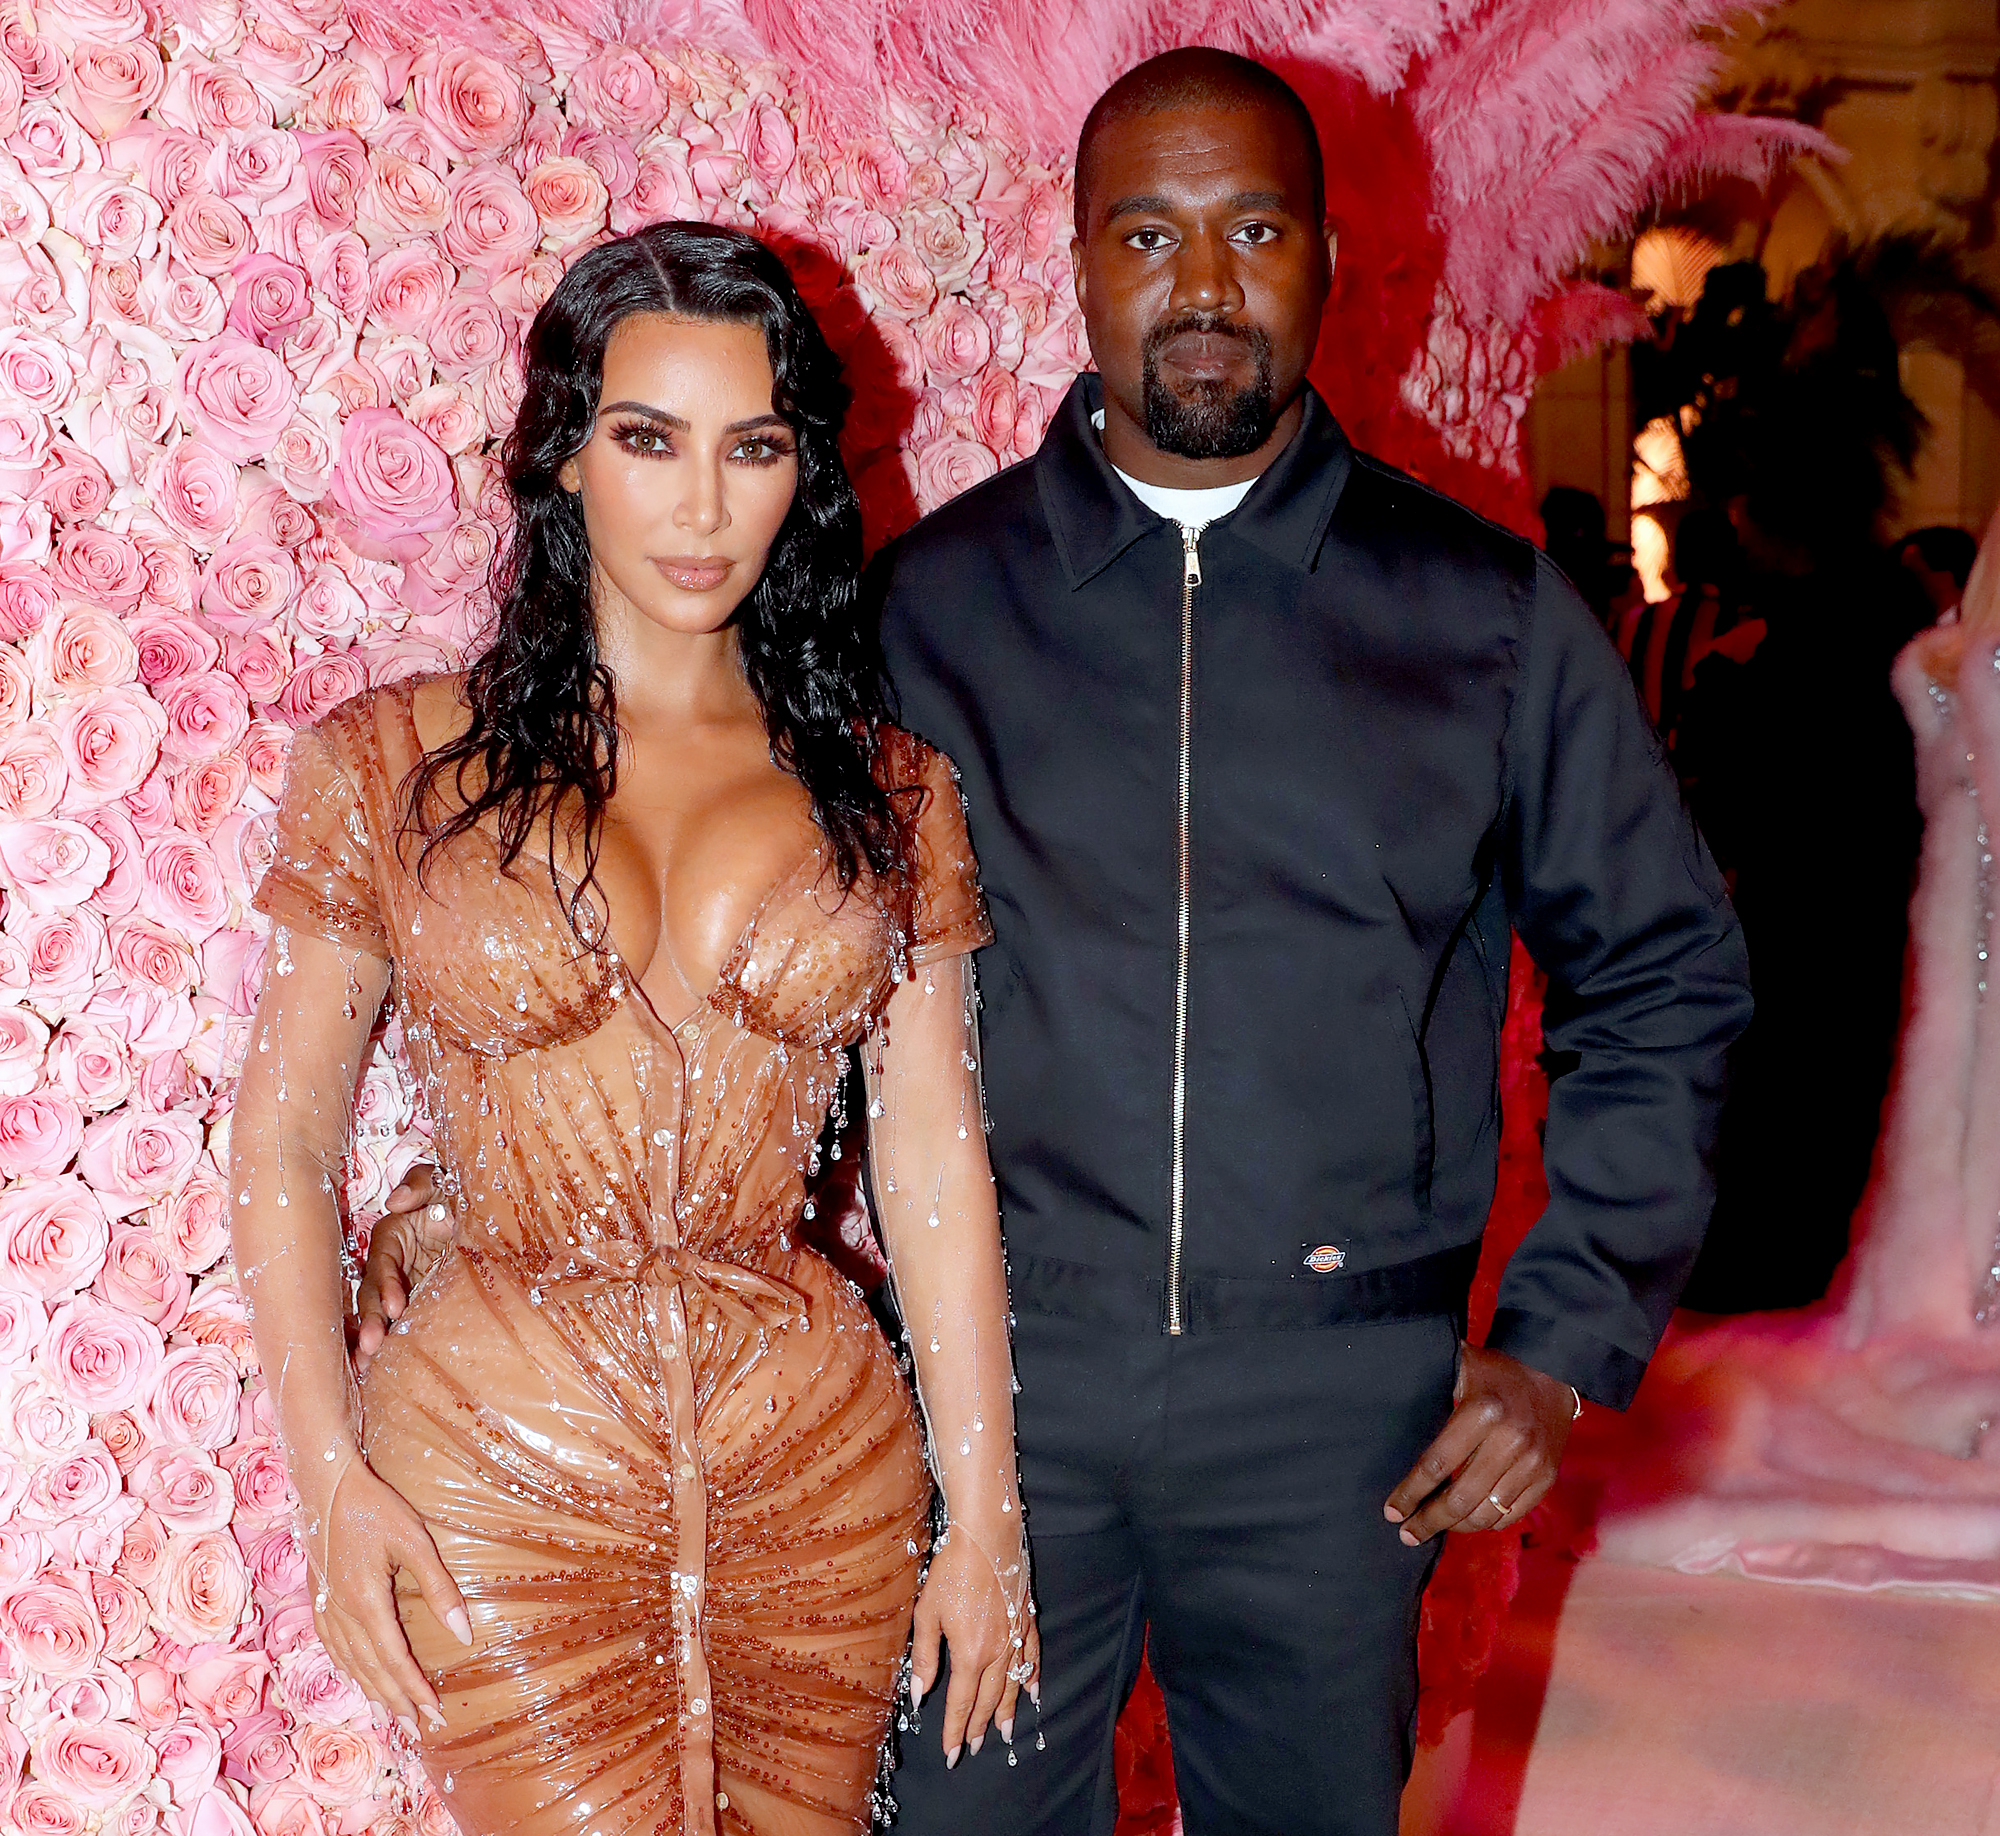 Psalm West Is 14 Days Old He's Set to Run a Hair Accessories Company - Kim Kardashian West and Kanye West attend The 2019 Met Gala Celebrating Camp: Notes on Fashion at Metropolitan Museum of Art on May 06, 2019 in New York City.